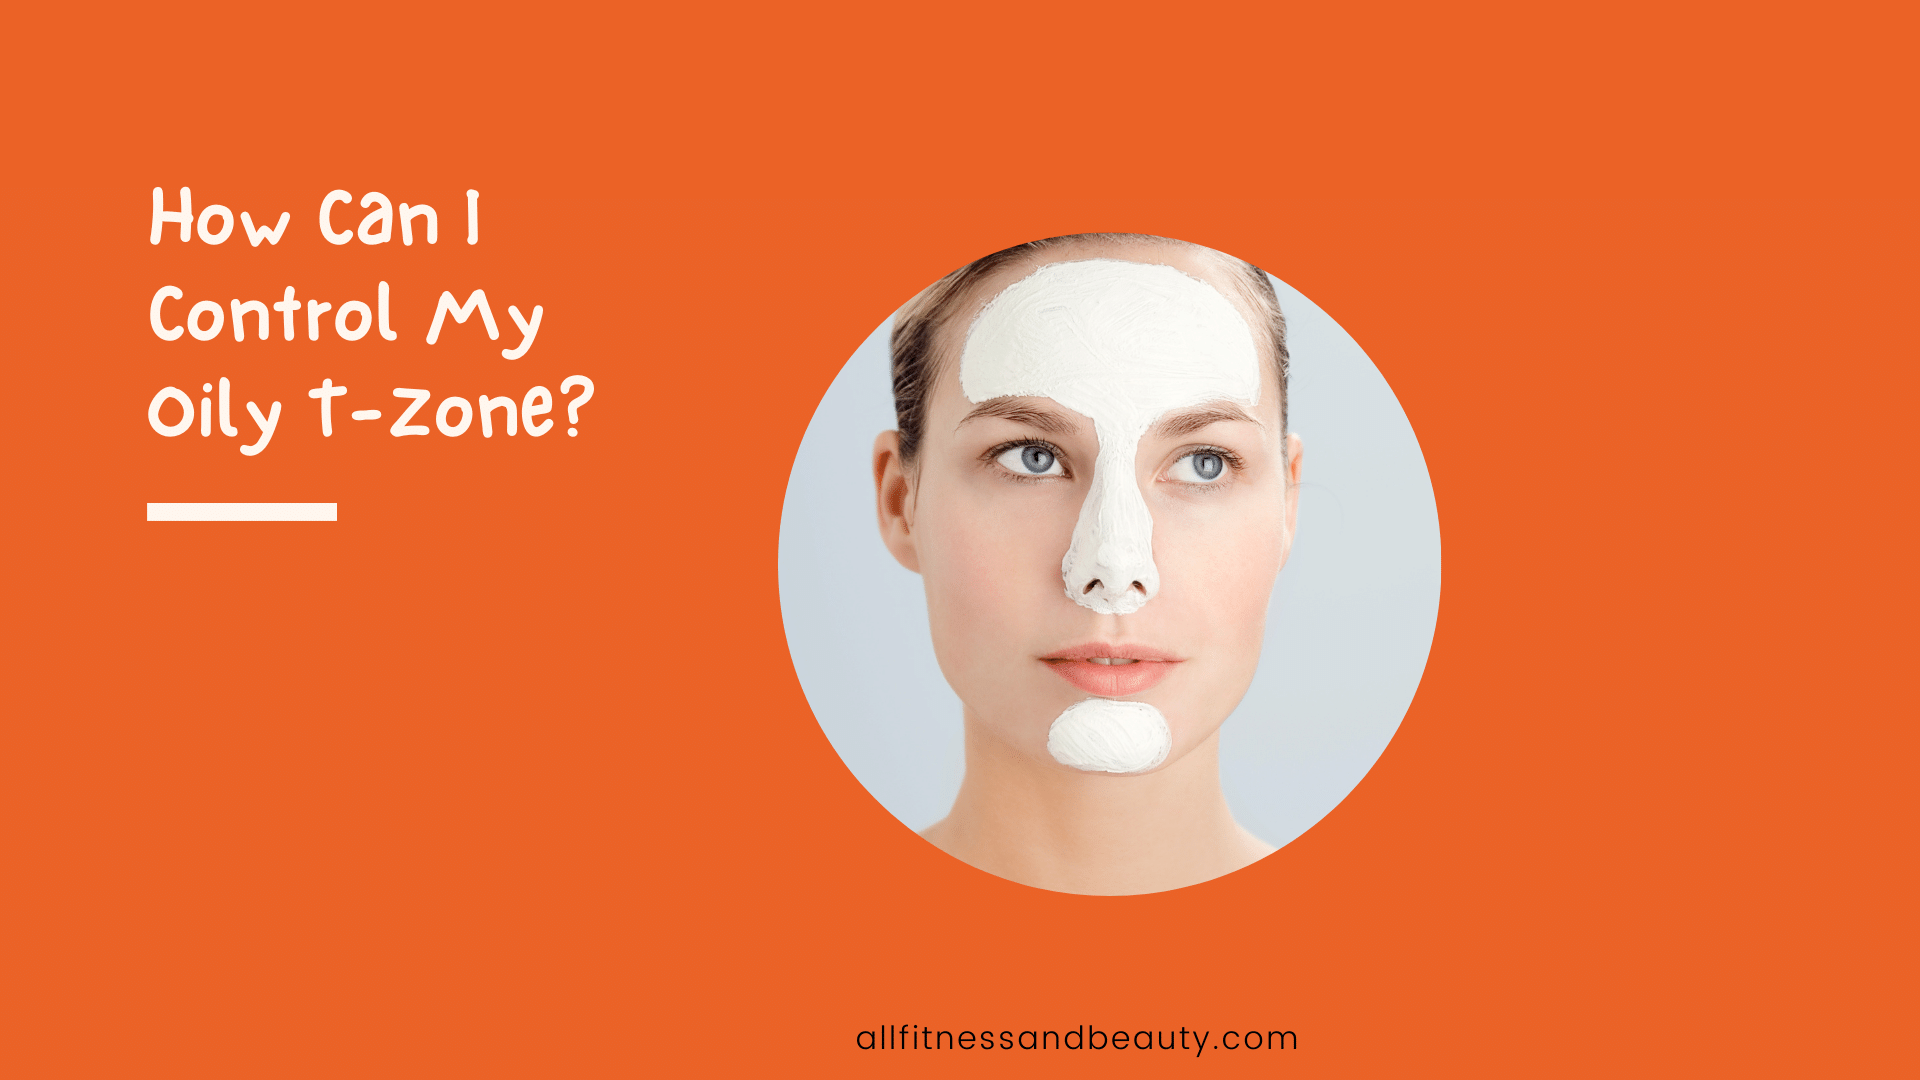 How Can I Control My Oily T-Zone